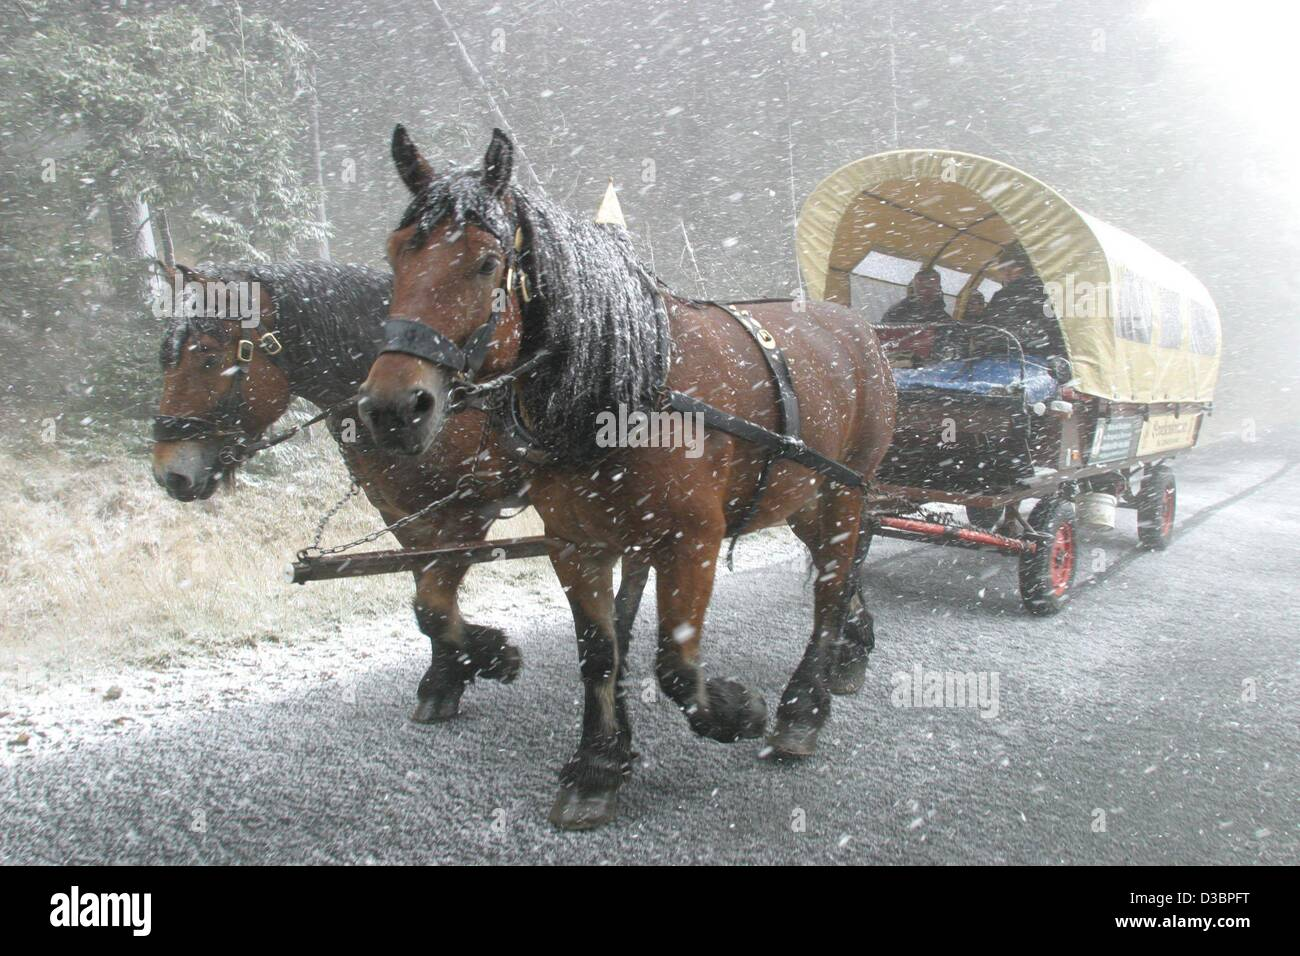 (dpa) - A stagecoach with two horses drives through dense snowfall on a road on the Brocken Mountain, in the Harz - Stock Image